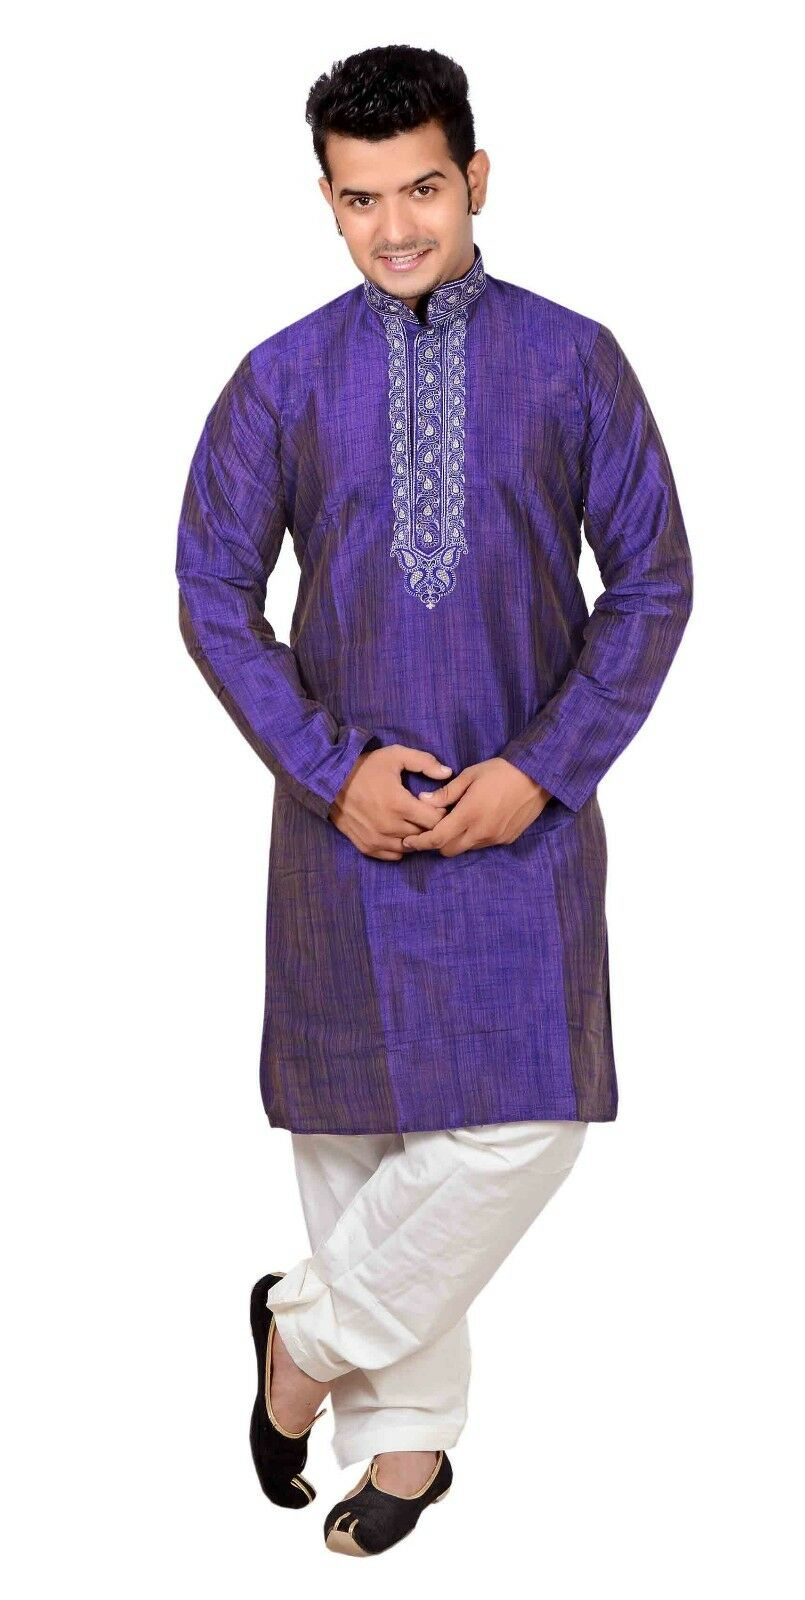 Men's Kurta Shalwar Kameez Pyjama Sherwani Wedding Asian Party Wear Outfit 747